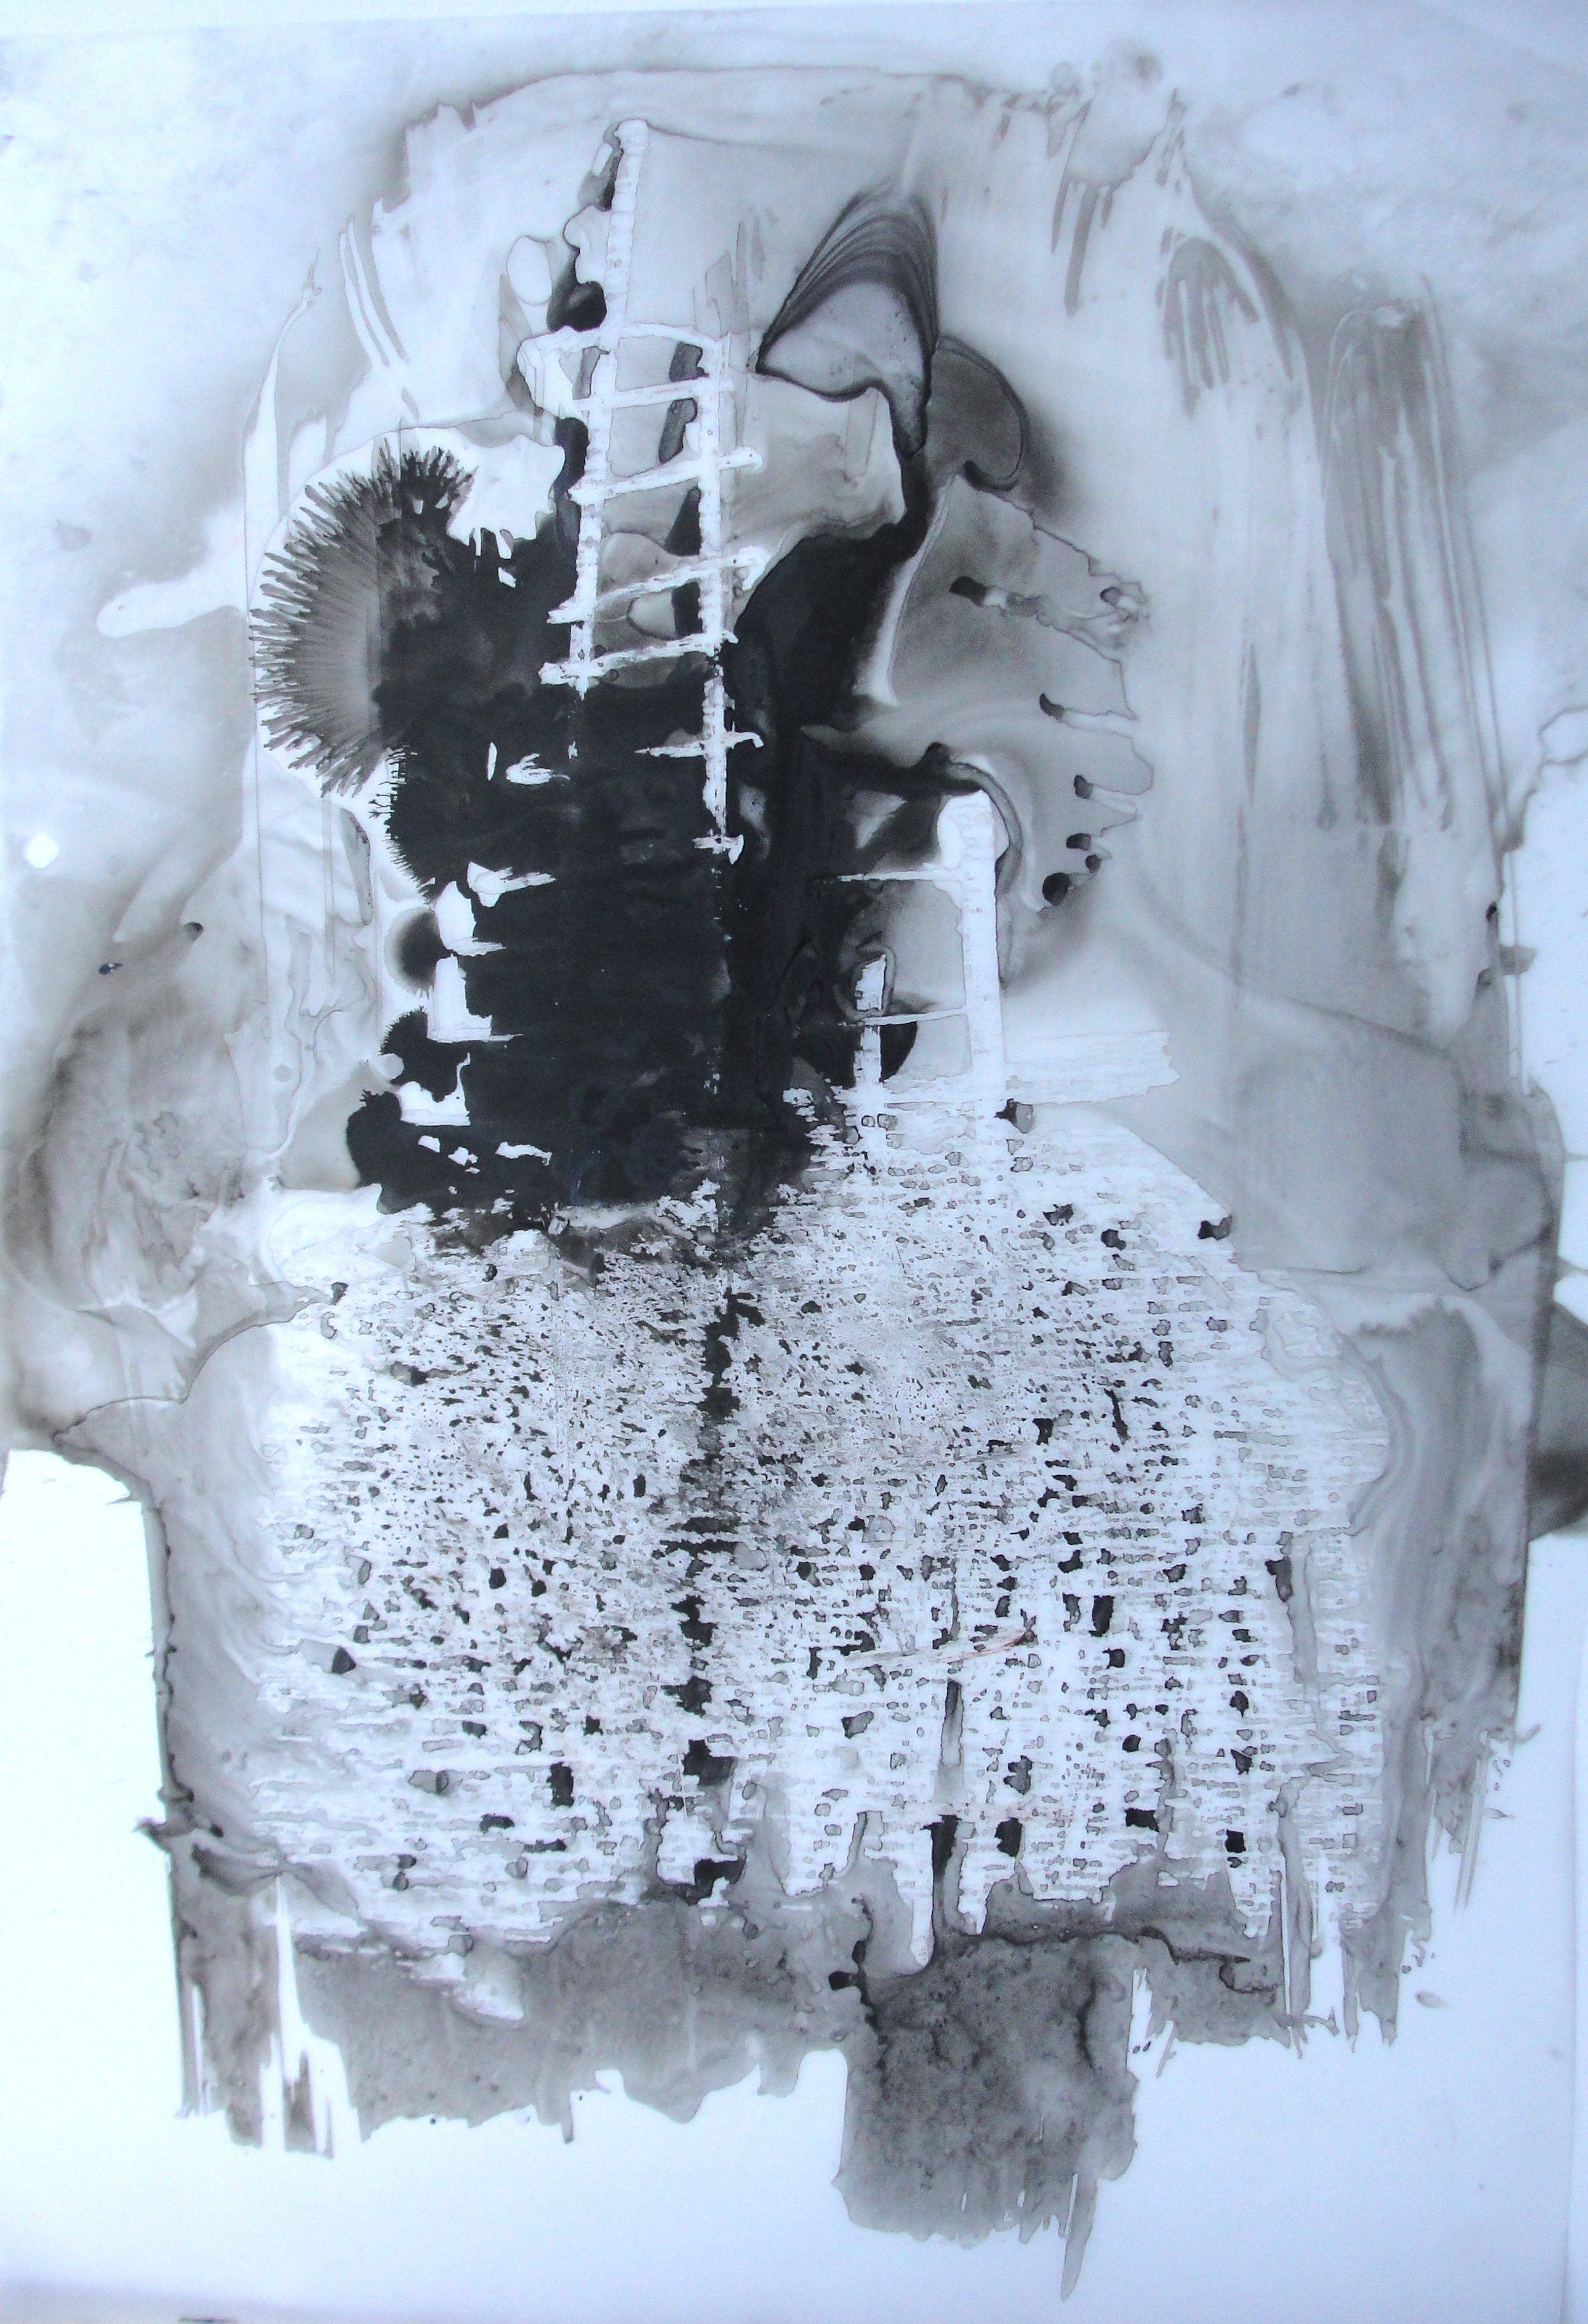 """Amie Oliver  , Heaven, Earth and Sea Series: Ascension ll , 2013  ink wash and wax on polypropylene vellum,30"""" x 24""""  image courtesy of the artist, collection of Pamela K. and William A. Royall Jr."""